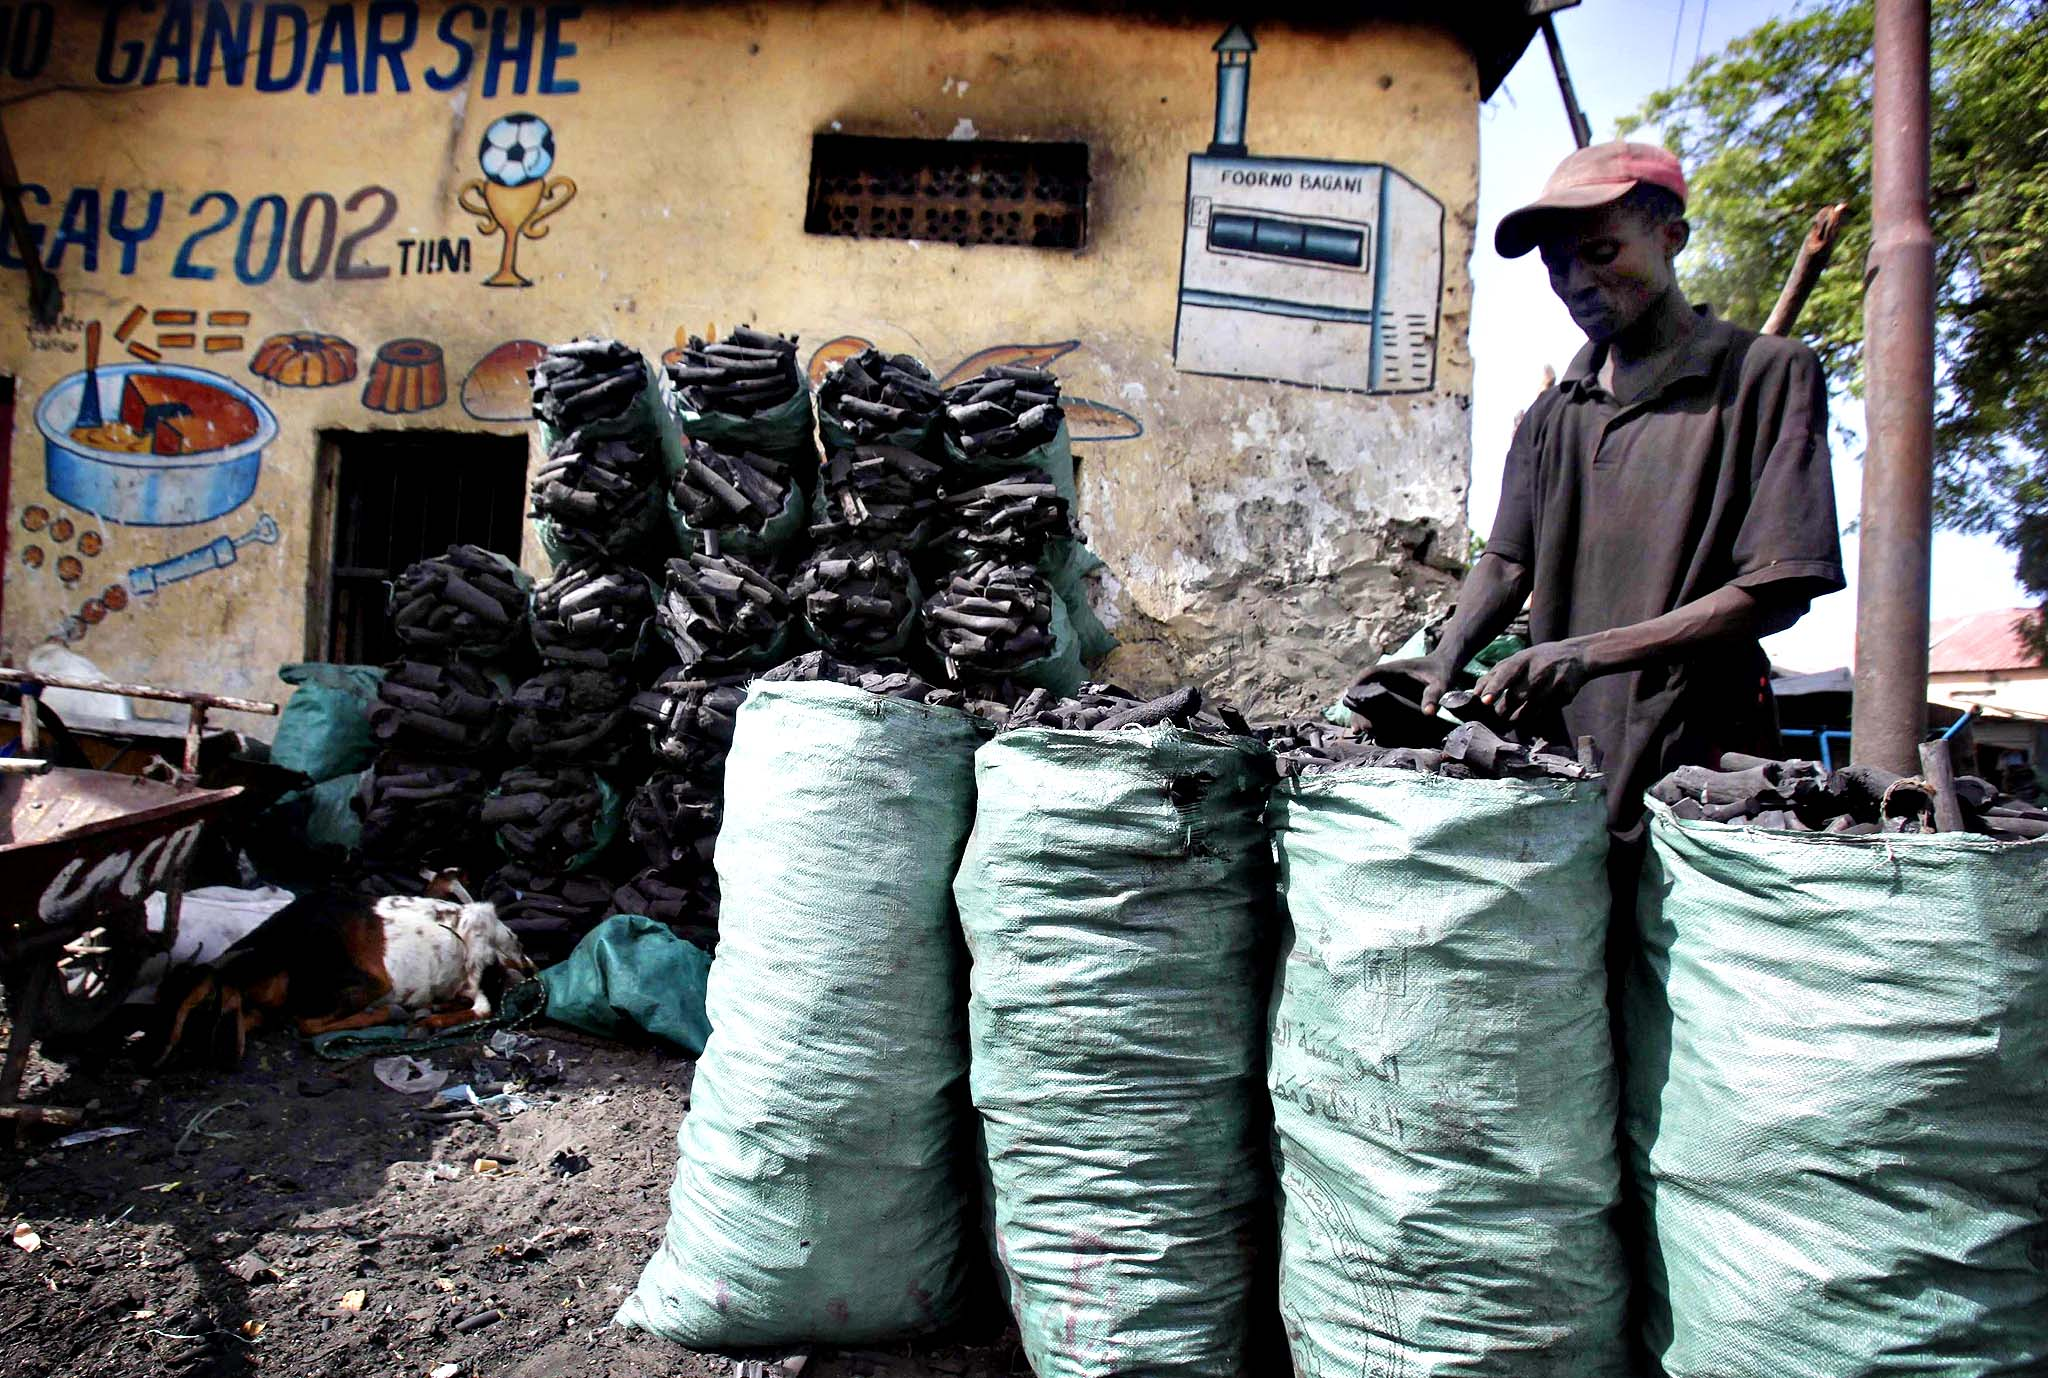 A trader arranges charcoal inside sacks along a street near the main Baraka market in Mogadishu, June 10, 2014.